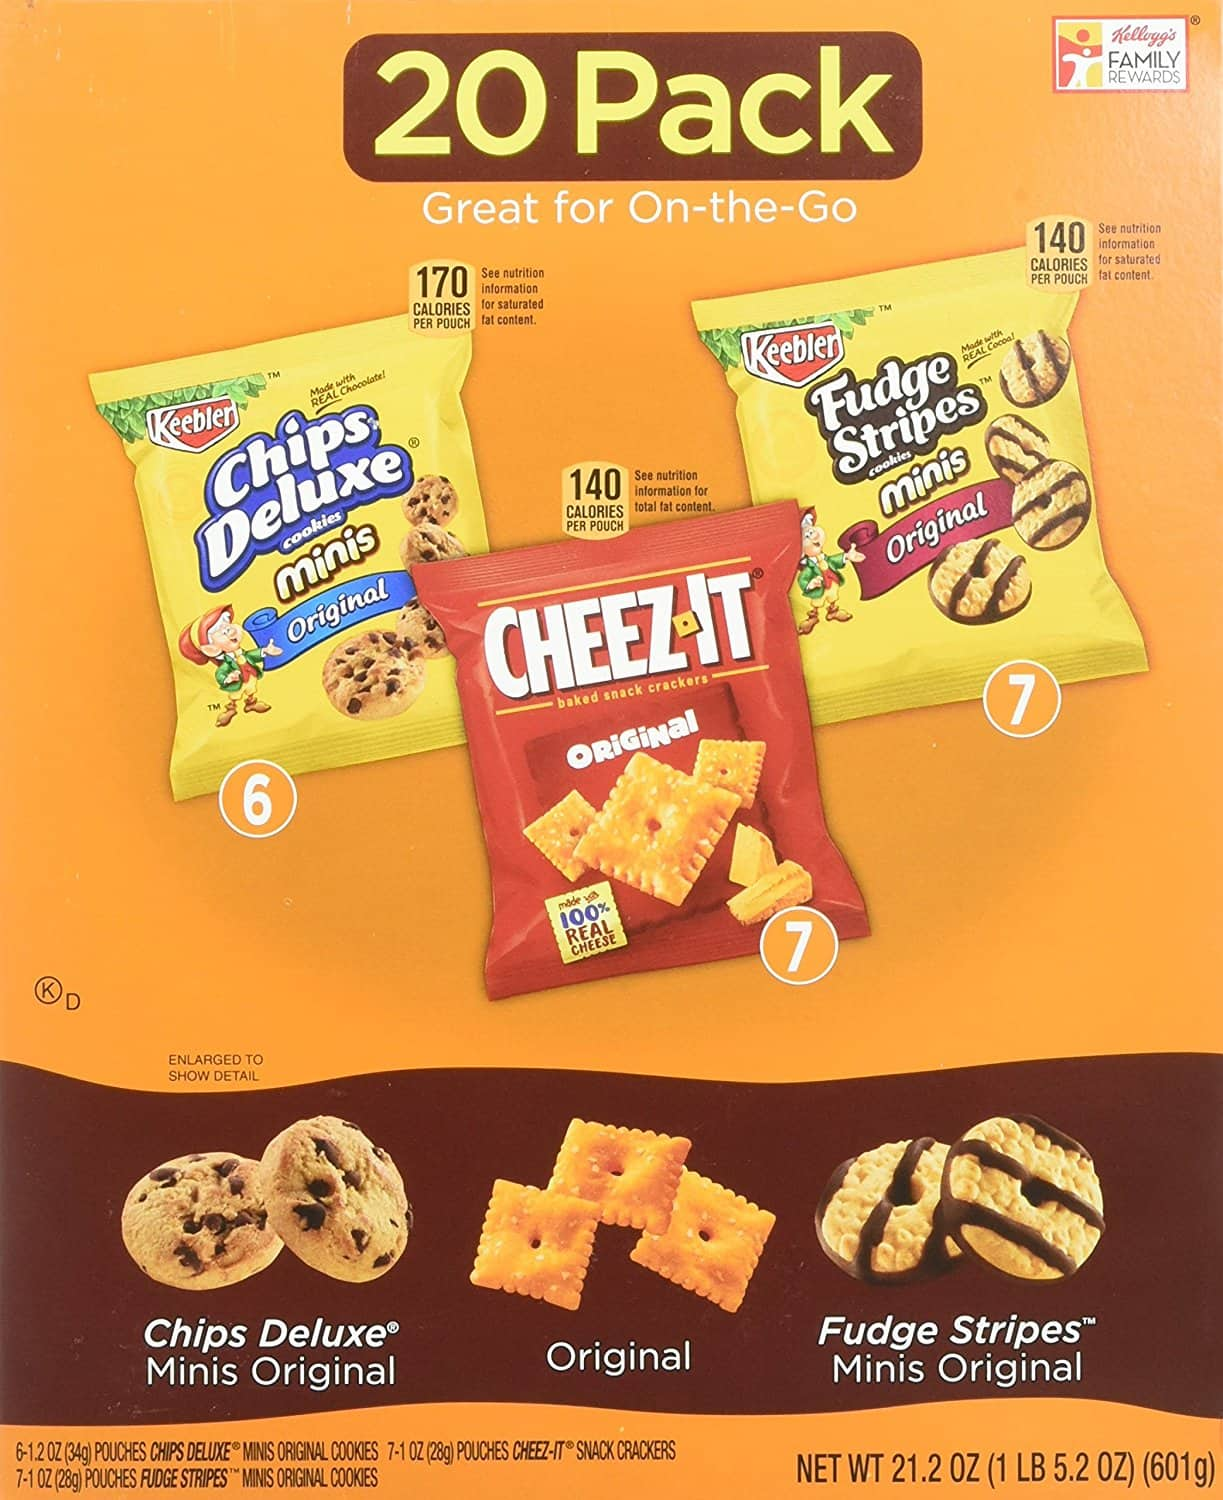 20-Count Keebler Cookie & Cheez-It Variety Pack (21.2oz Total) $3.18 or Less + Free Shipping Amazon.com